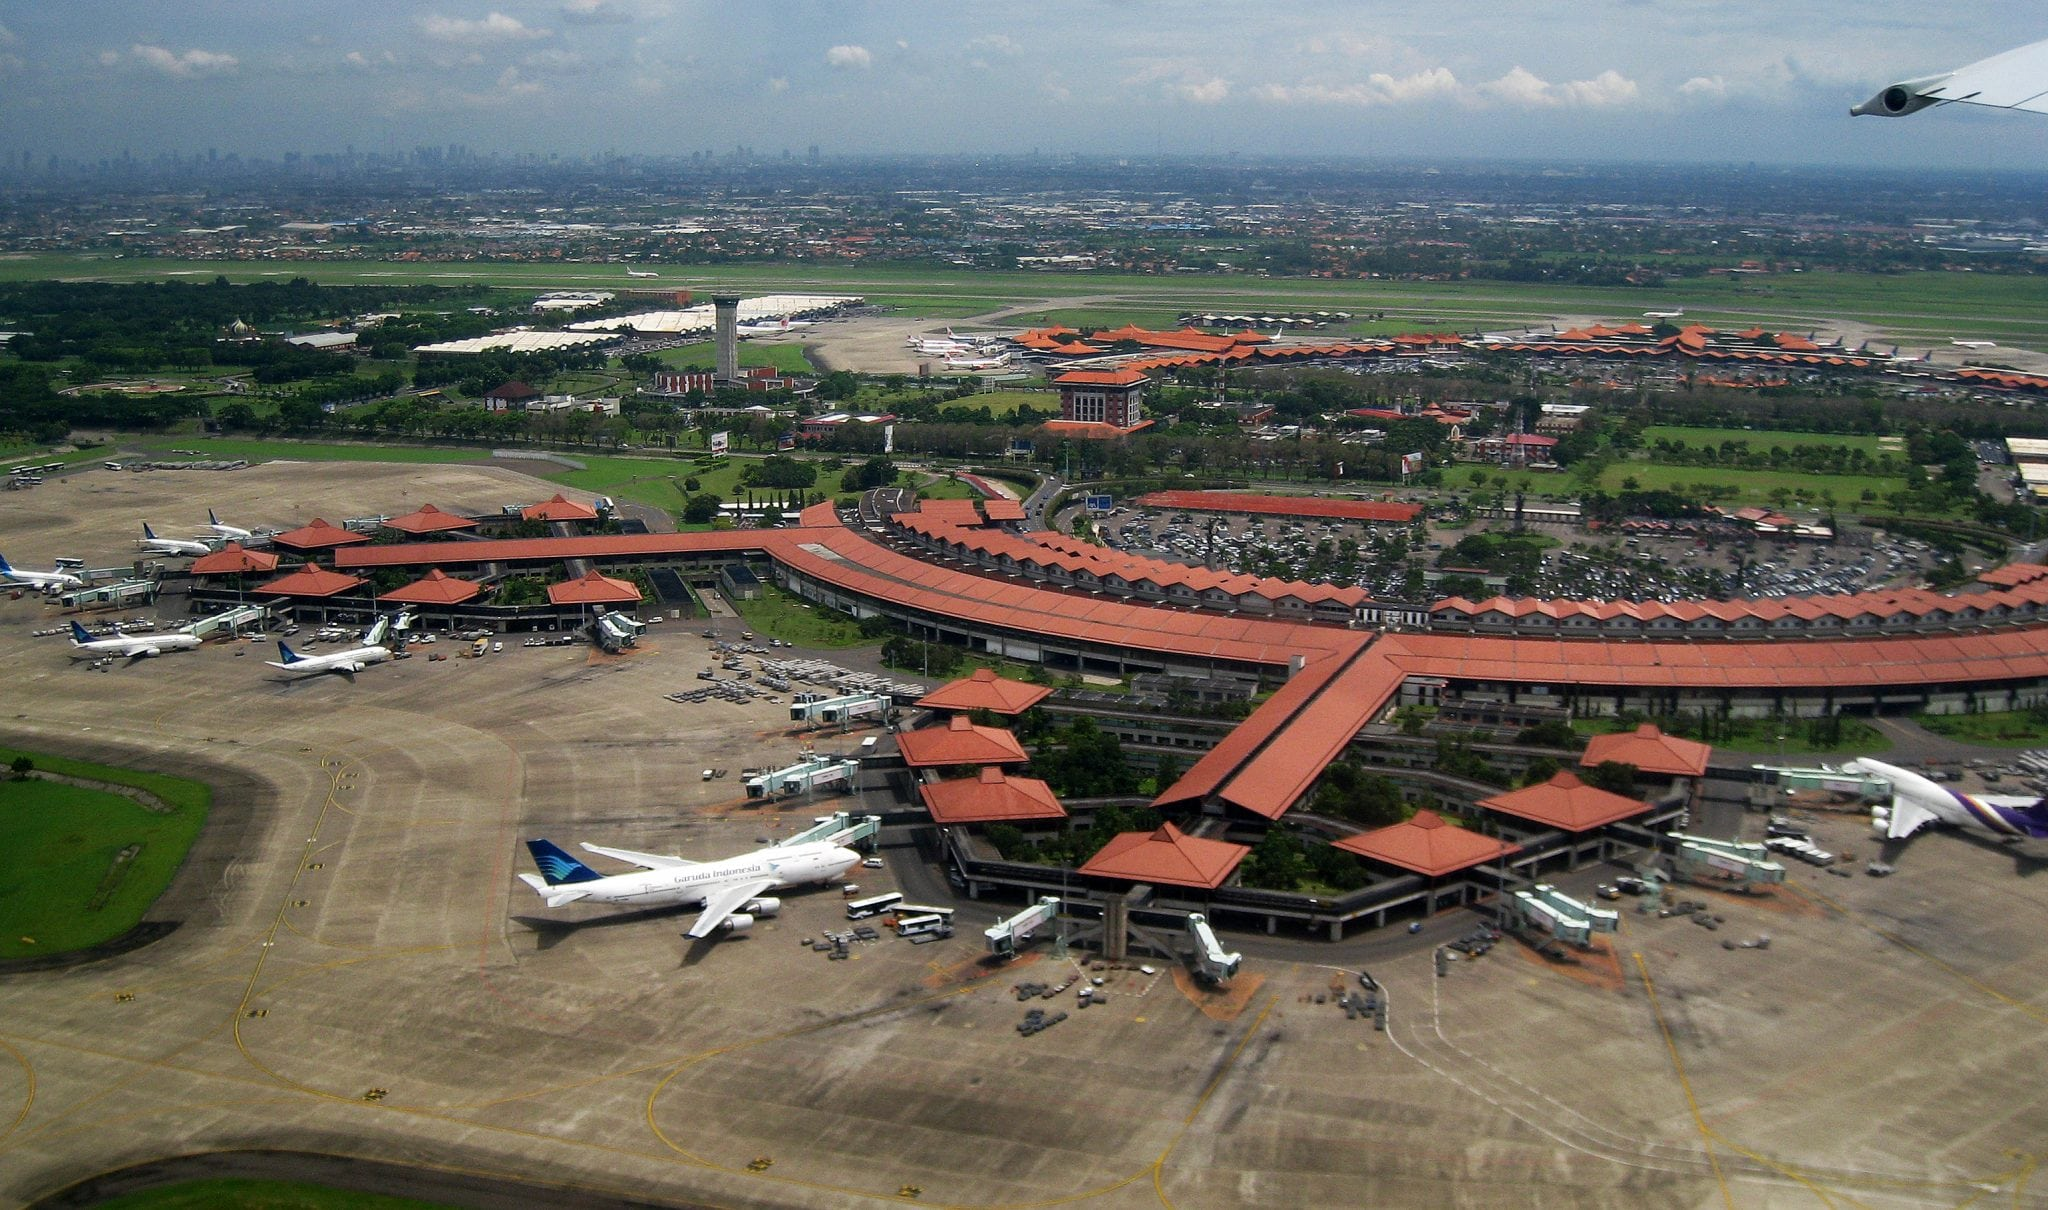 Soekarno–Hatta International Airport, the busiest in Indonesia and Southeast Asia